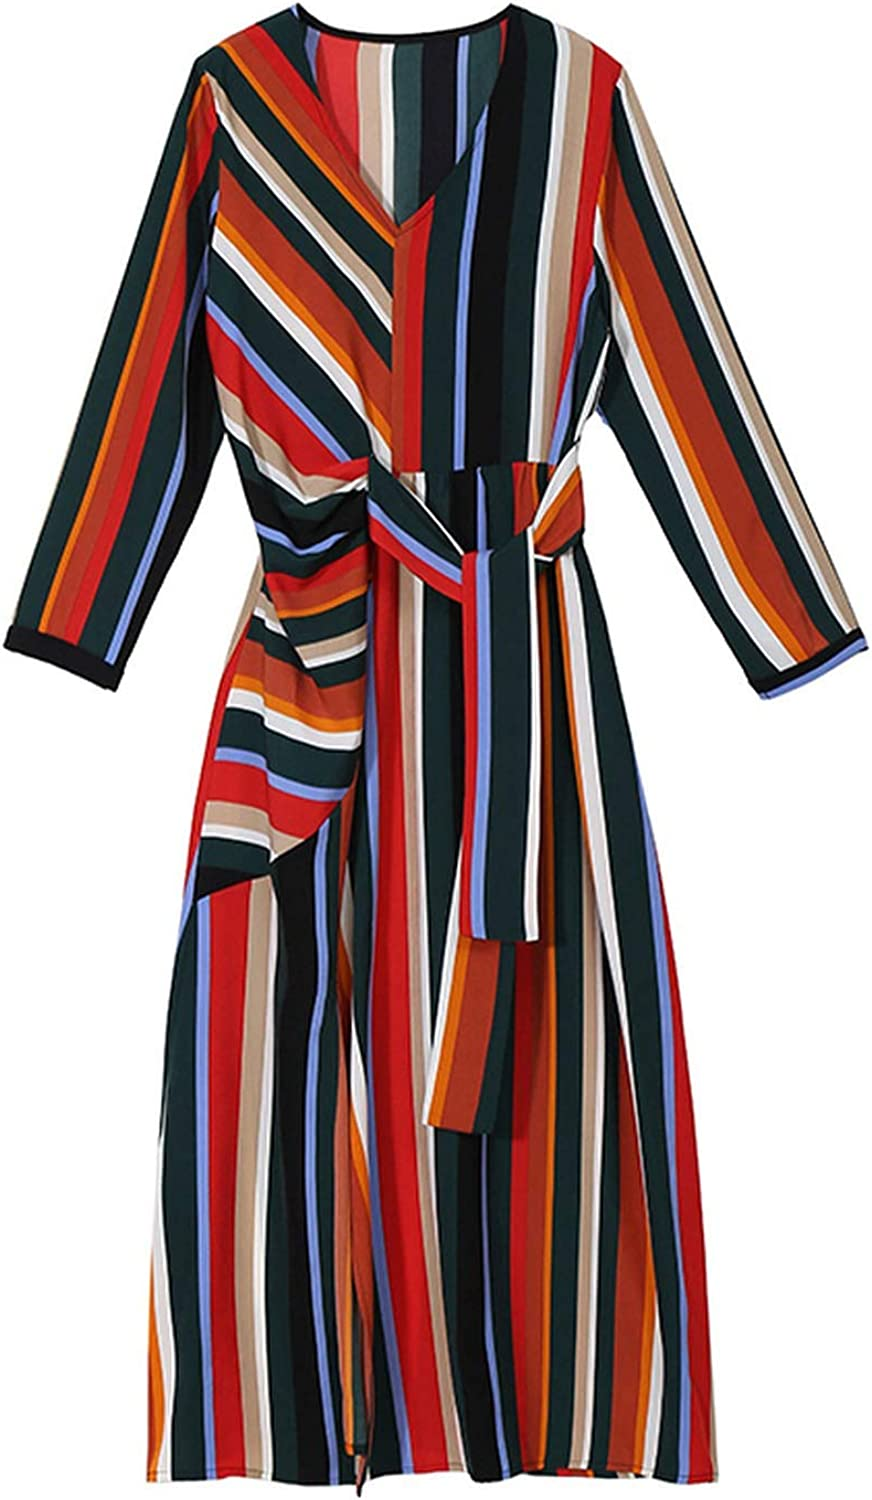 AllAboutUs 2019 Women Spring colorful Printed Striped Long Dress with Sashes Long Sleeve V Neck